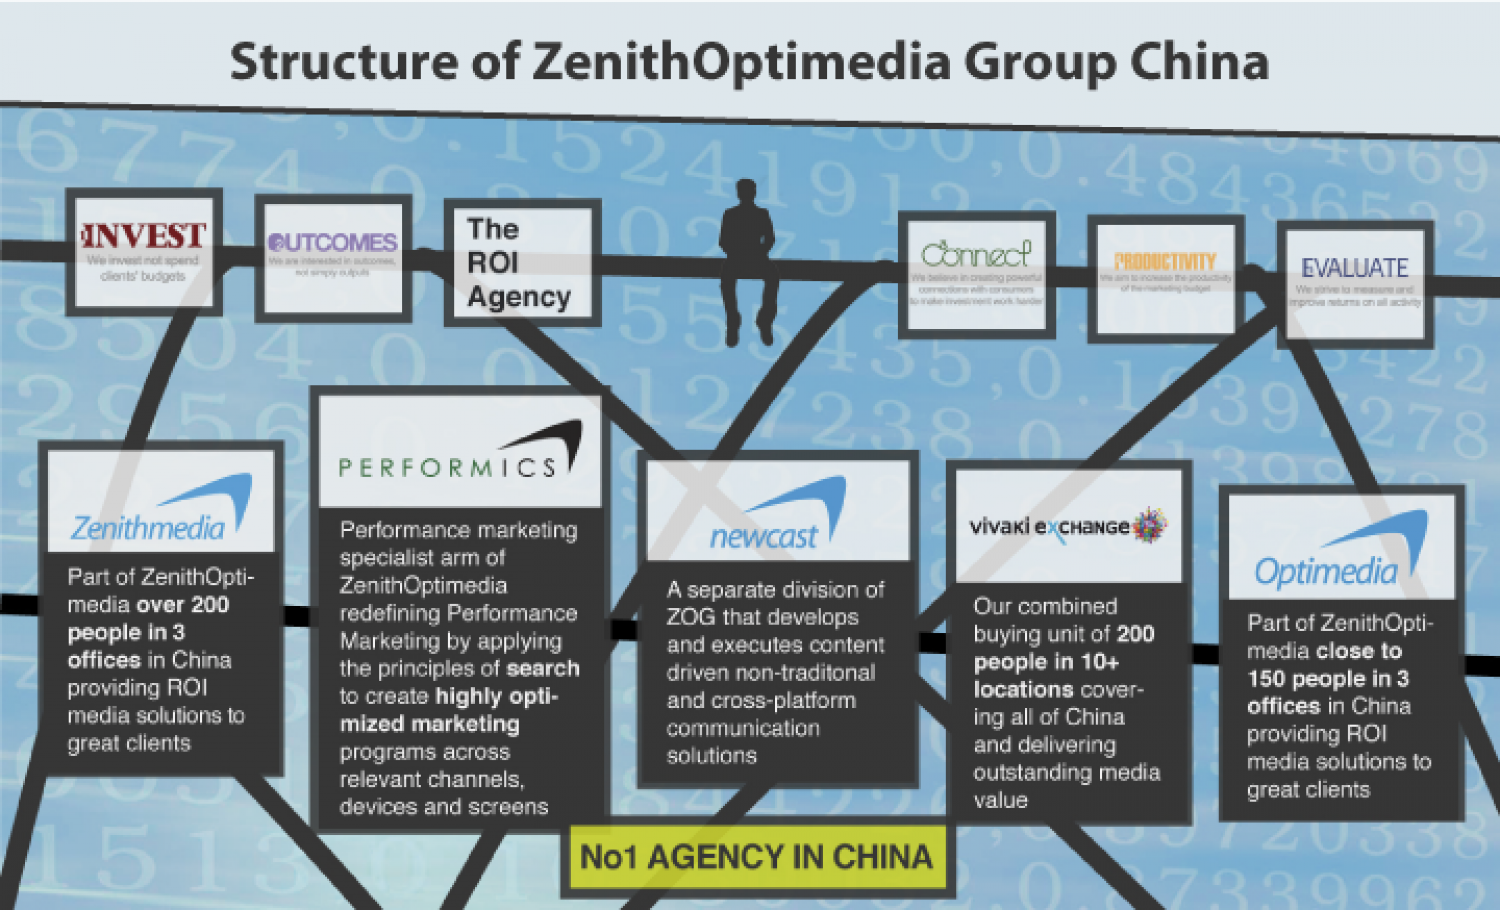 Extructure of ZenithOptimedia Group China Infographic